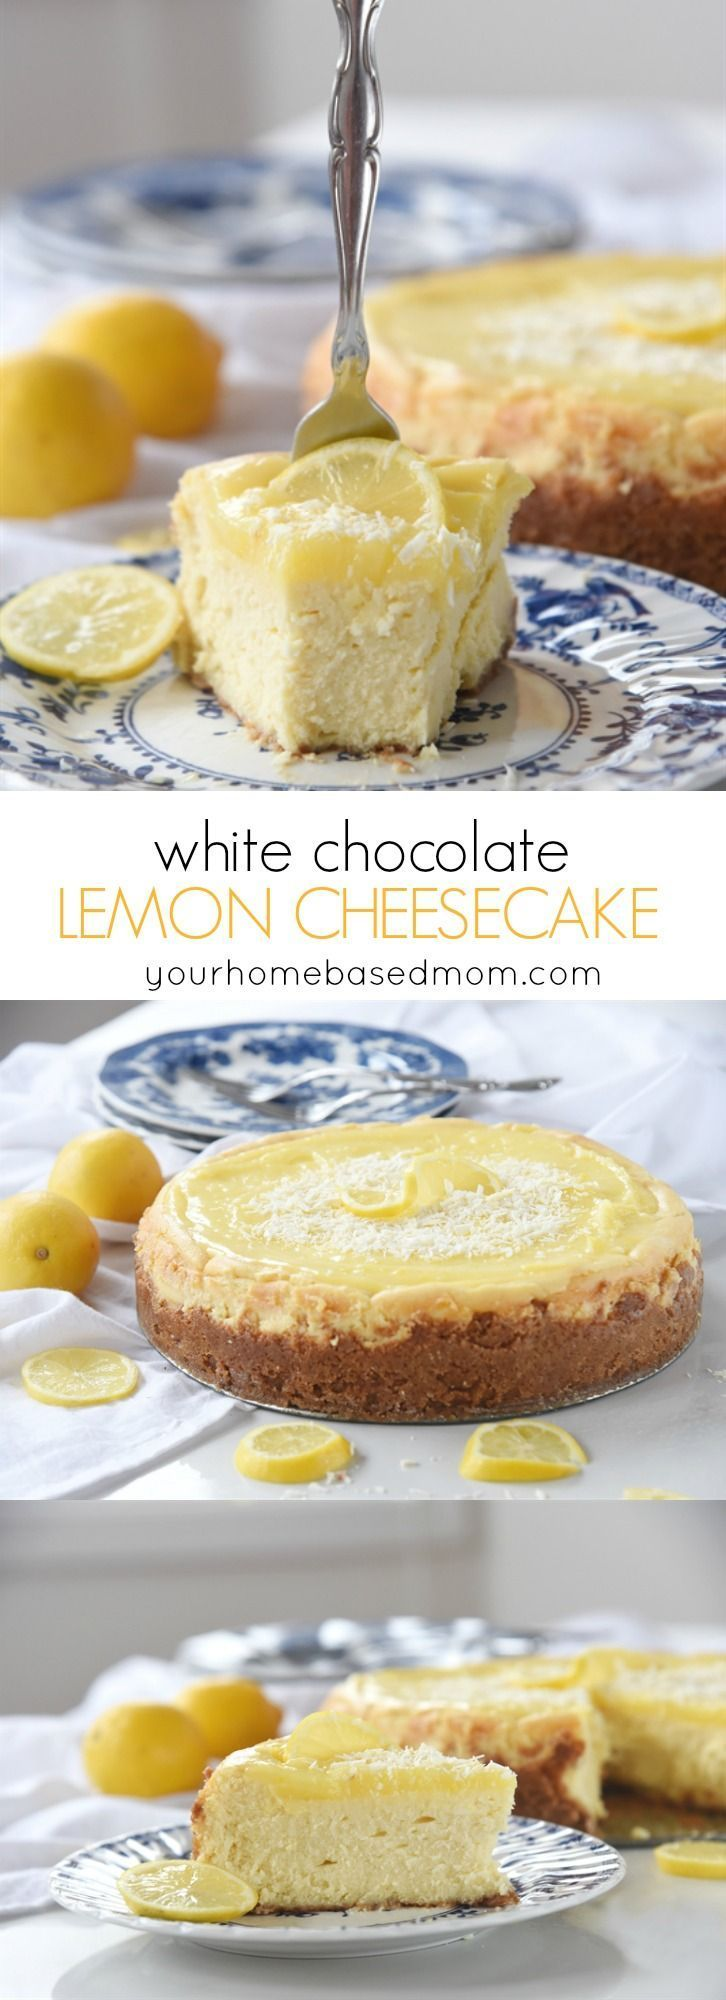 White Chocolate Lemon Cheesecake Dessert Recipe - perfect for Easter Brunch or dinner. White Chocolate Lemon Cheesecake is creamy and rich with a graham cracker crust and a lemon curd top!: